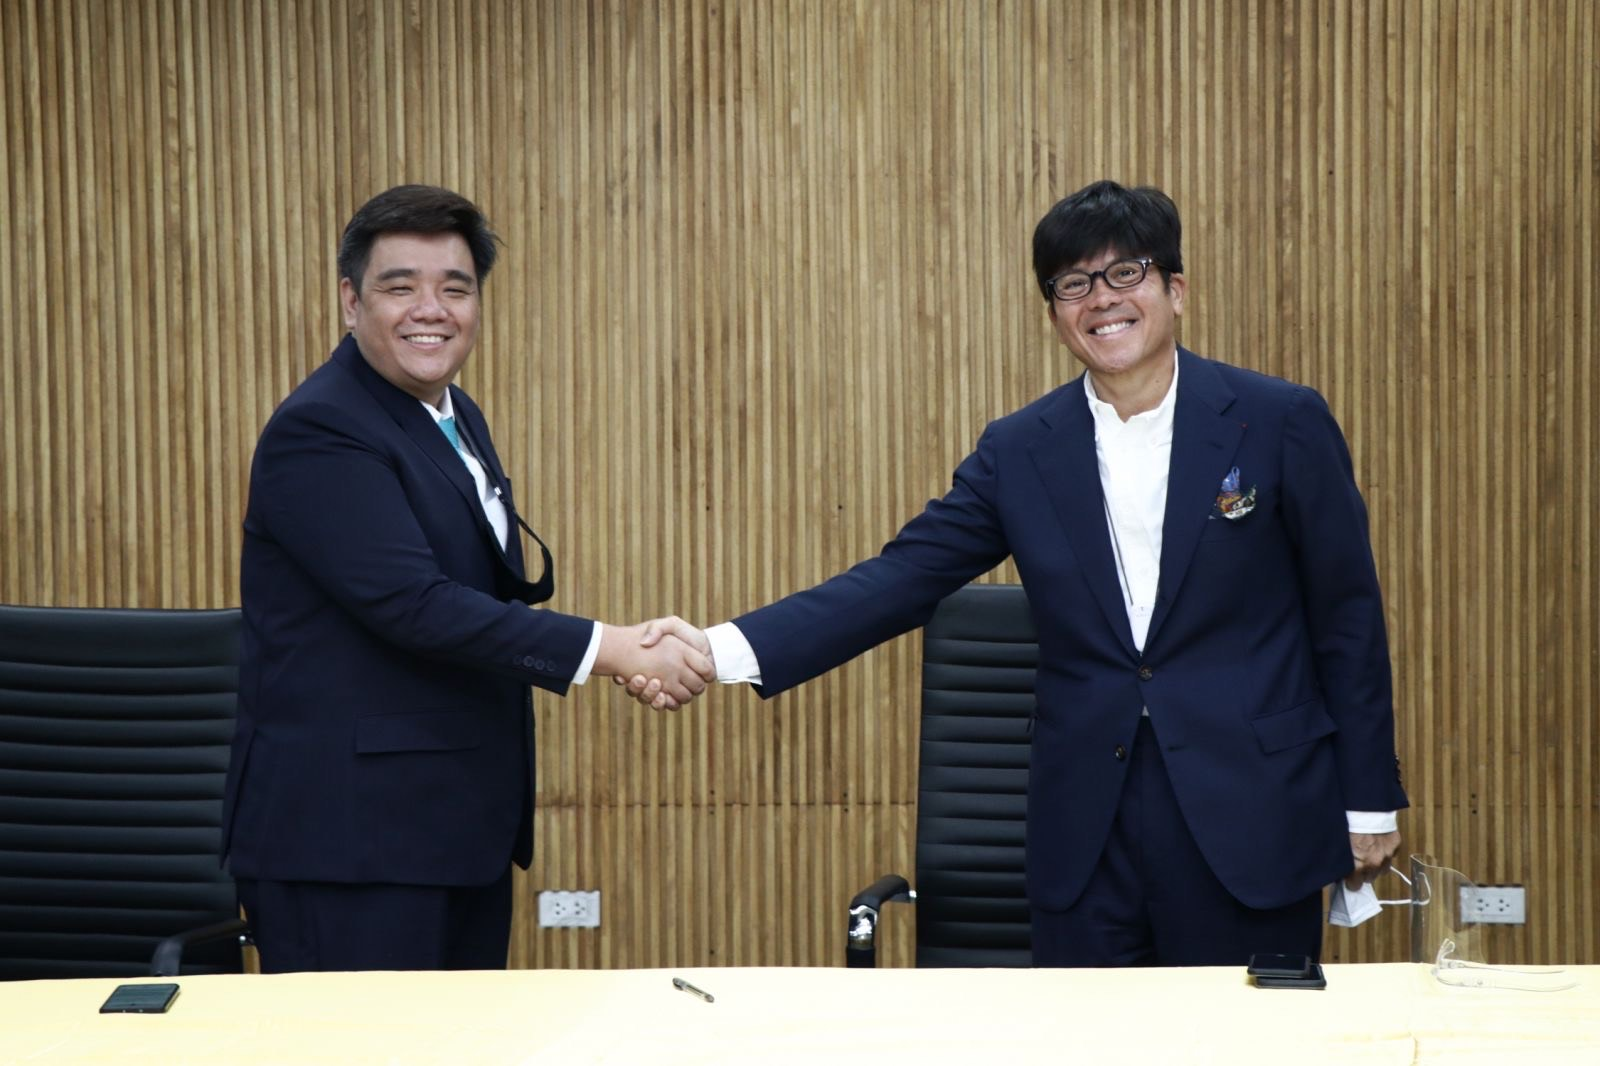 Steve Sy, the CHIEF EXECUTIVE OFFICER of Great Deals, and Bill Chiongban, CEO of Effective Group, sign the seek the companies' strategic partnership